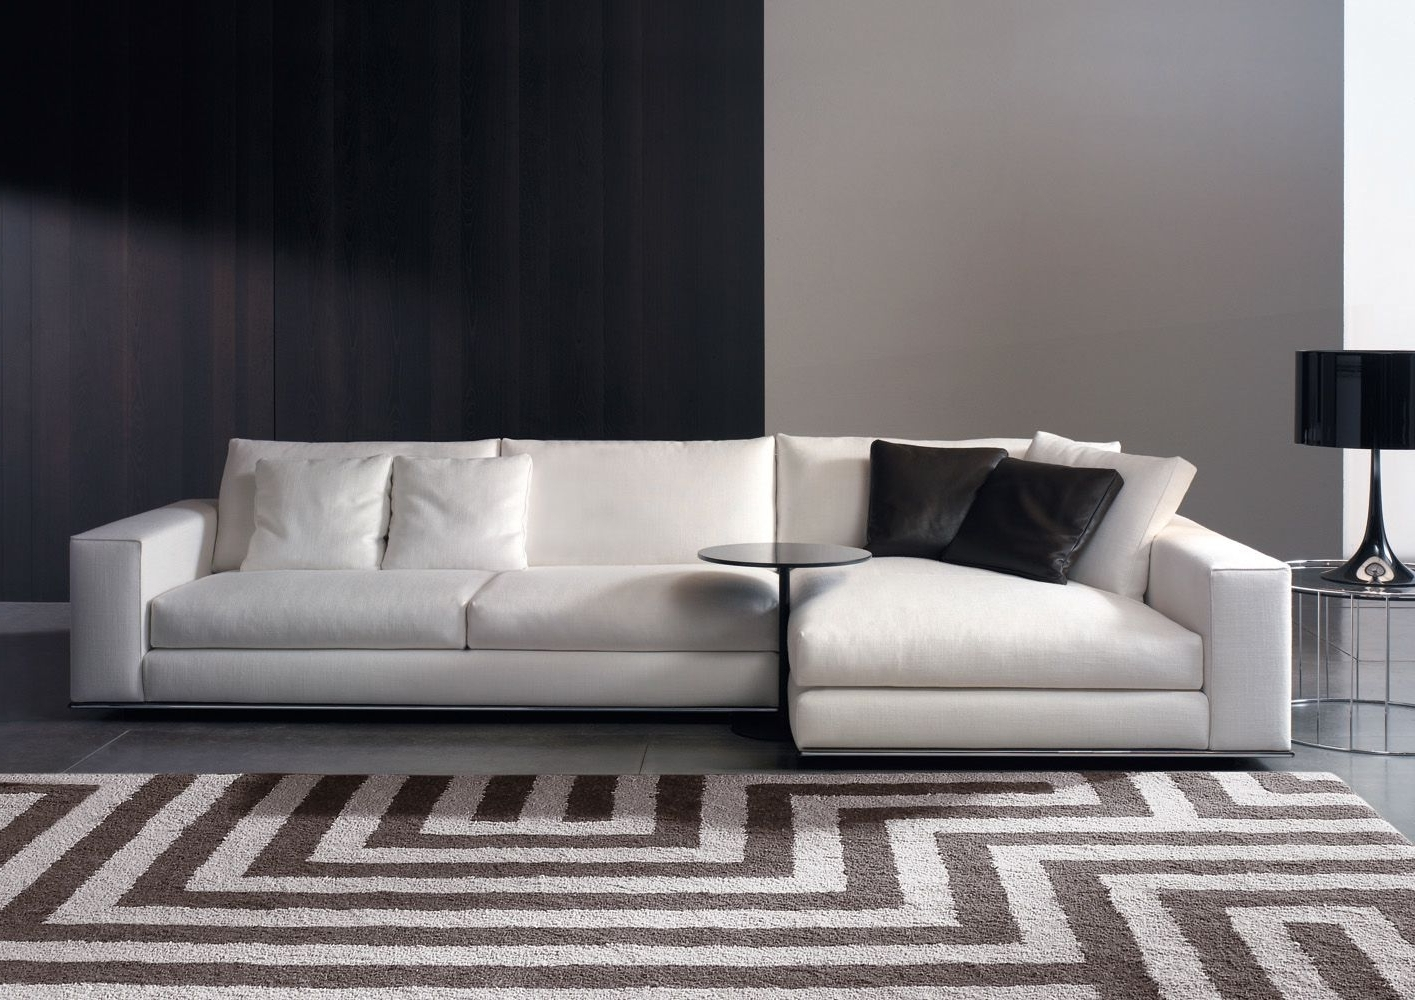 Most Recent Hamilton Sofaminotti This Looks More Comfortable Than The With Hamilton Sectional Sofas (View 7 of 20)